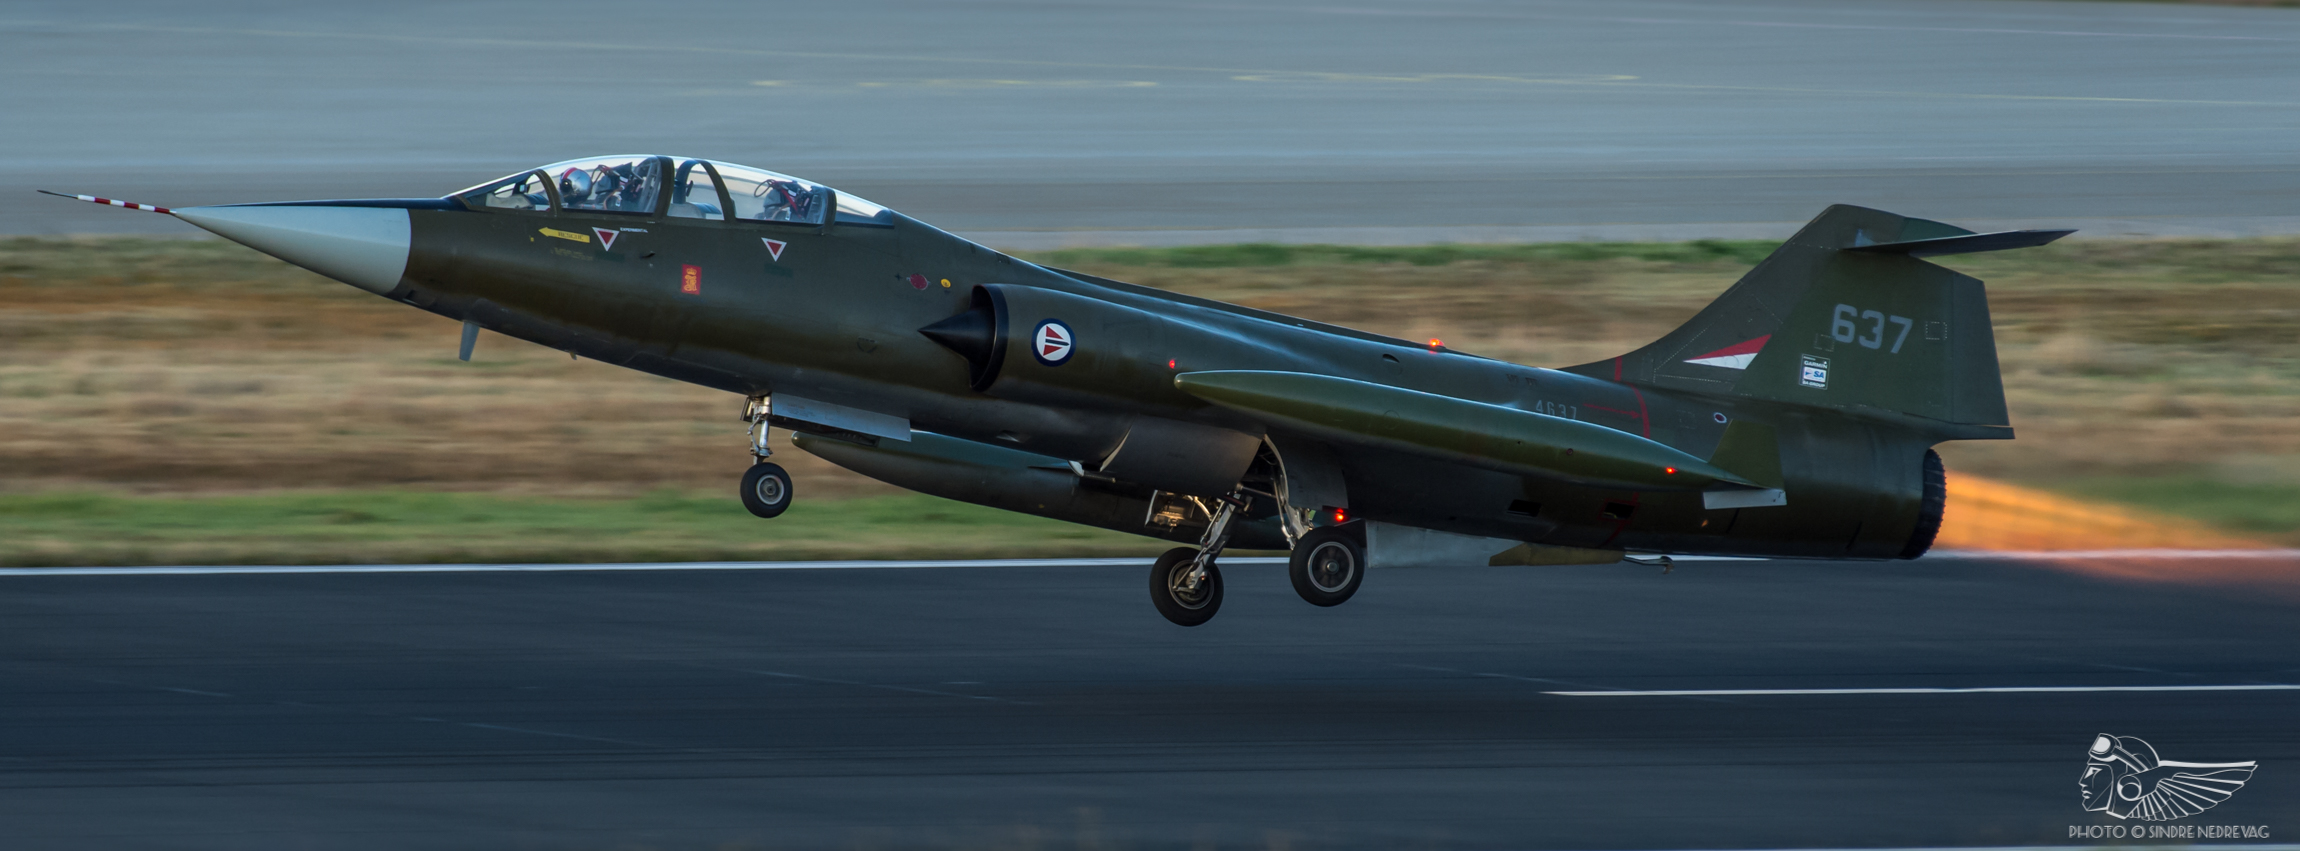 Flight testing Norway's restored CF-104D Starfighter